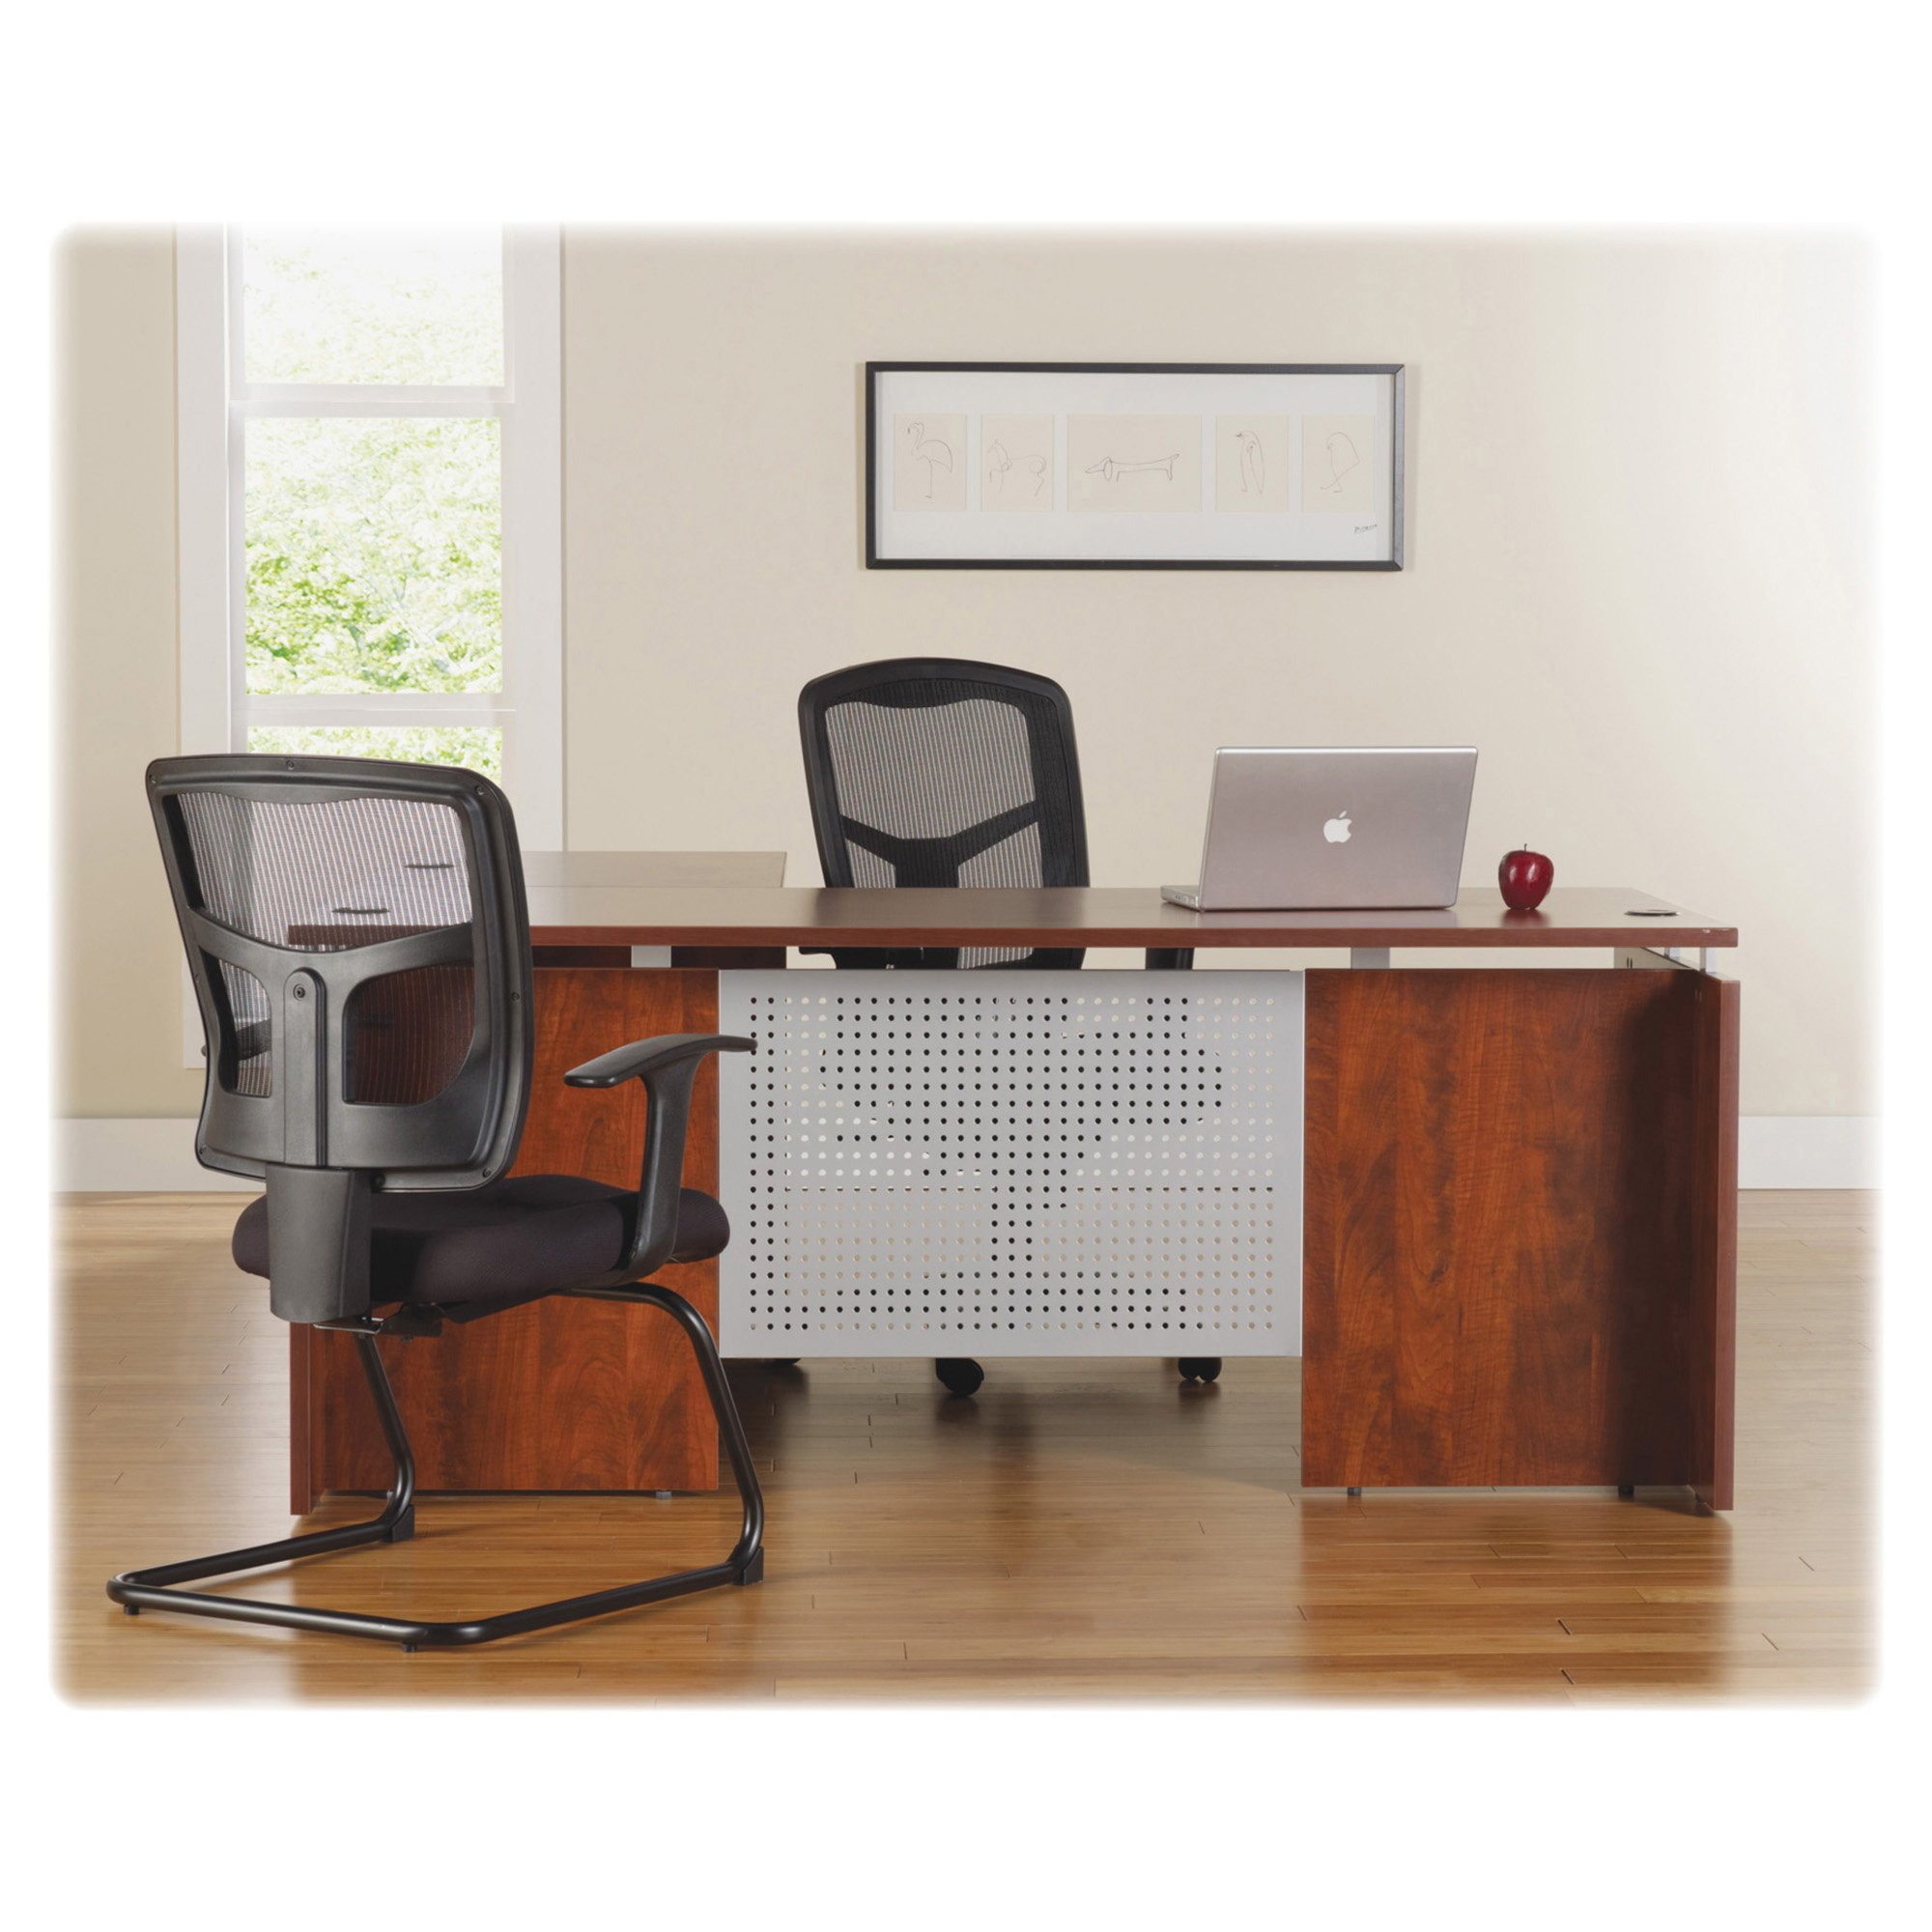 Lorell LLR68705 Executive Desk, Cherry by Lorell (Image #4)